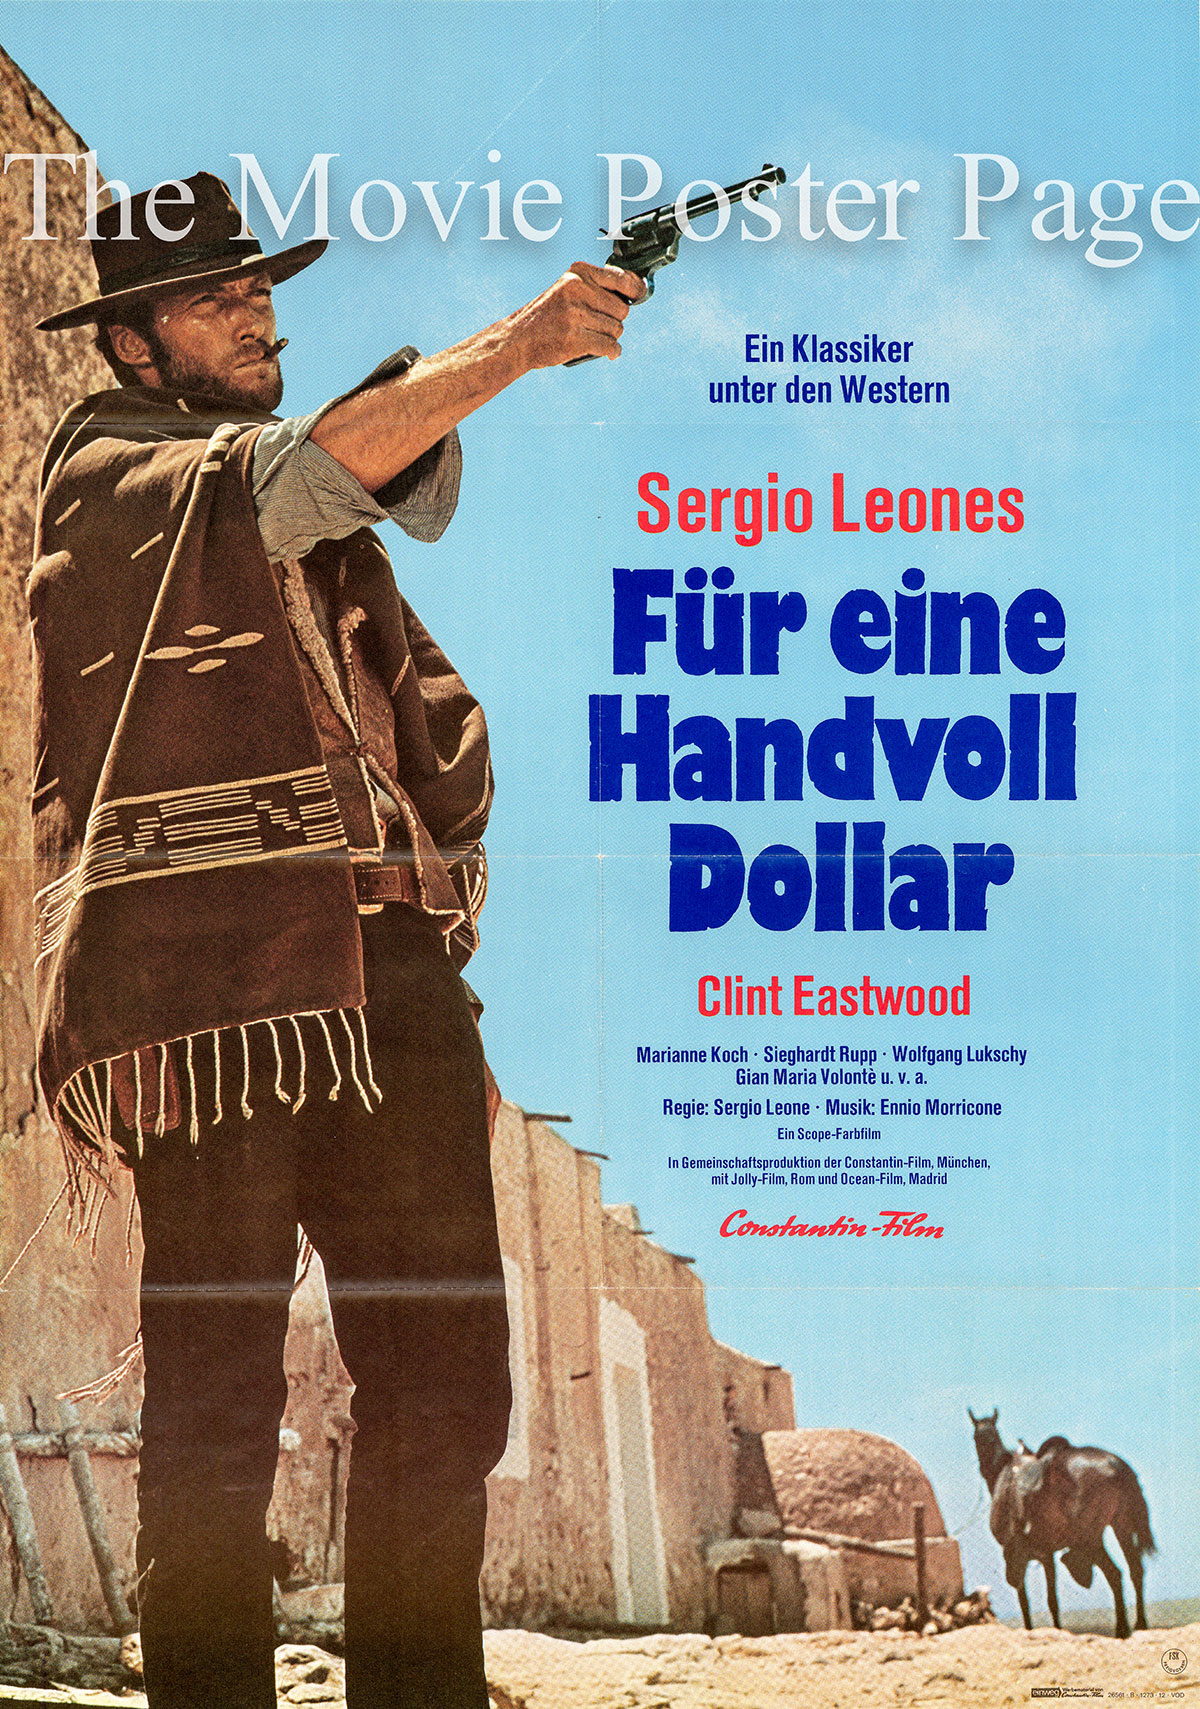 Pictured is a German one-sheet poster for a 1972 rerelease of the 1964 Sergio Leone film A Fistful of Dollars starring Clint Eastwood as Joe.